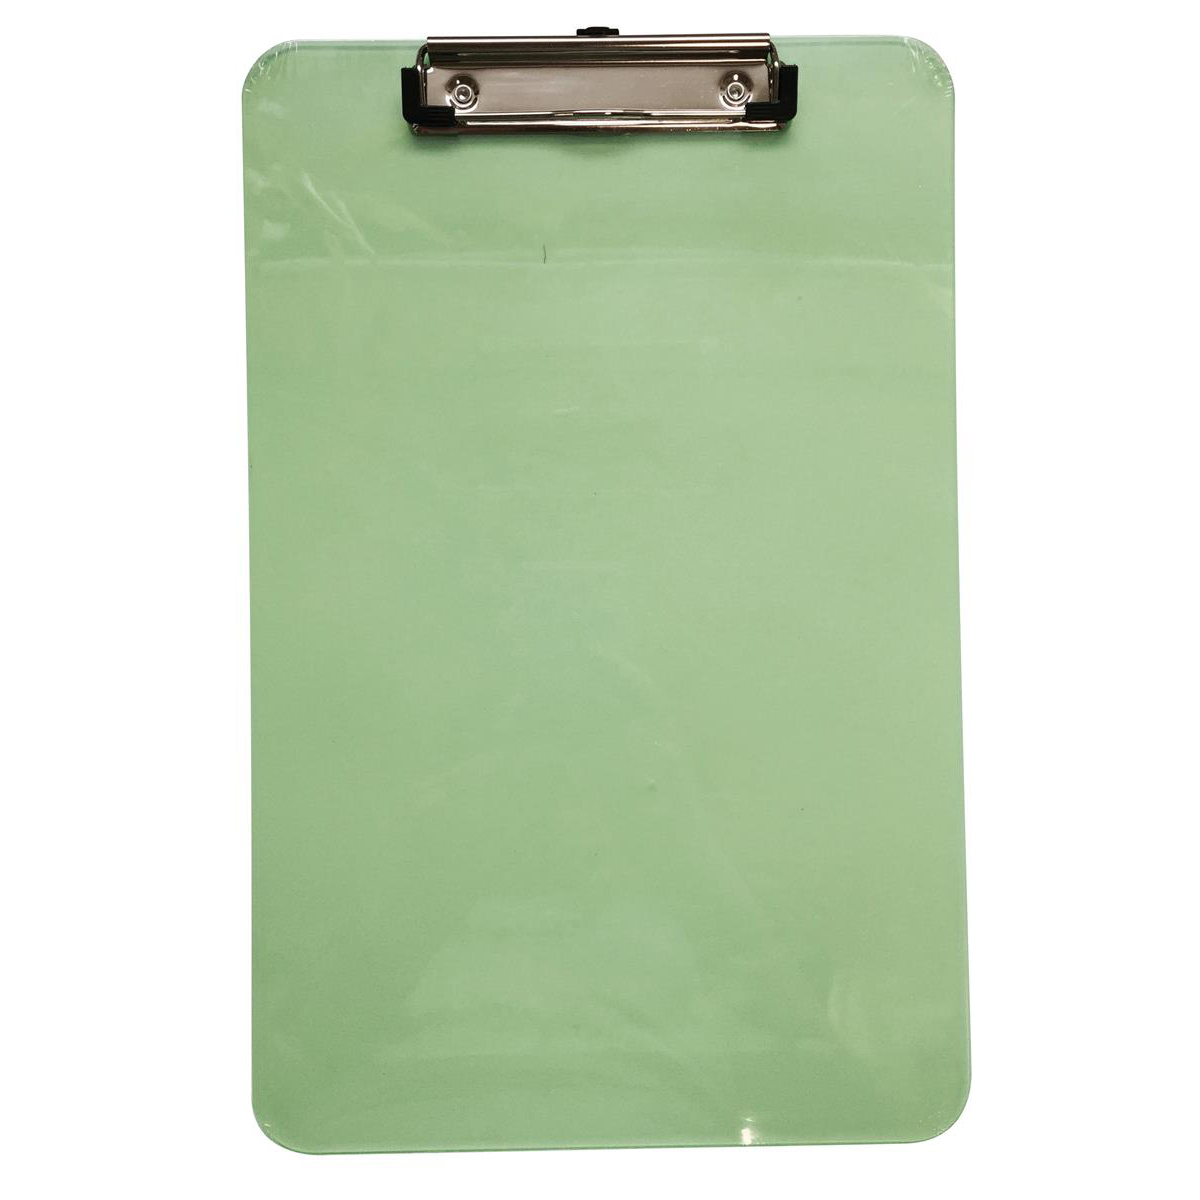 Clipboards 5 Star Office Clipboard Polypropylene Shatterproof Pink or Green or Turquoise